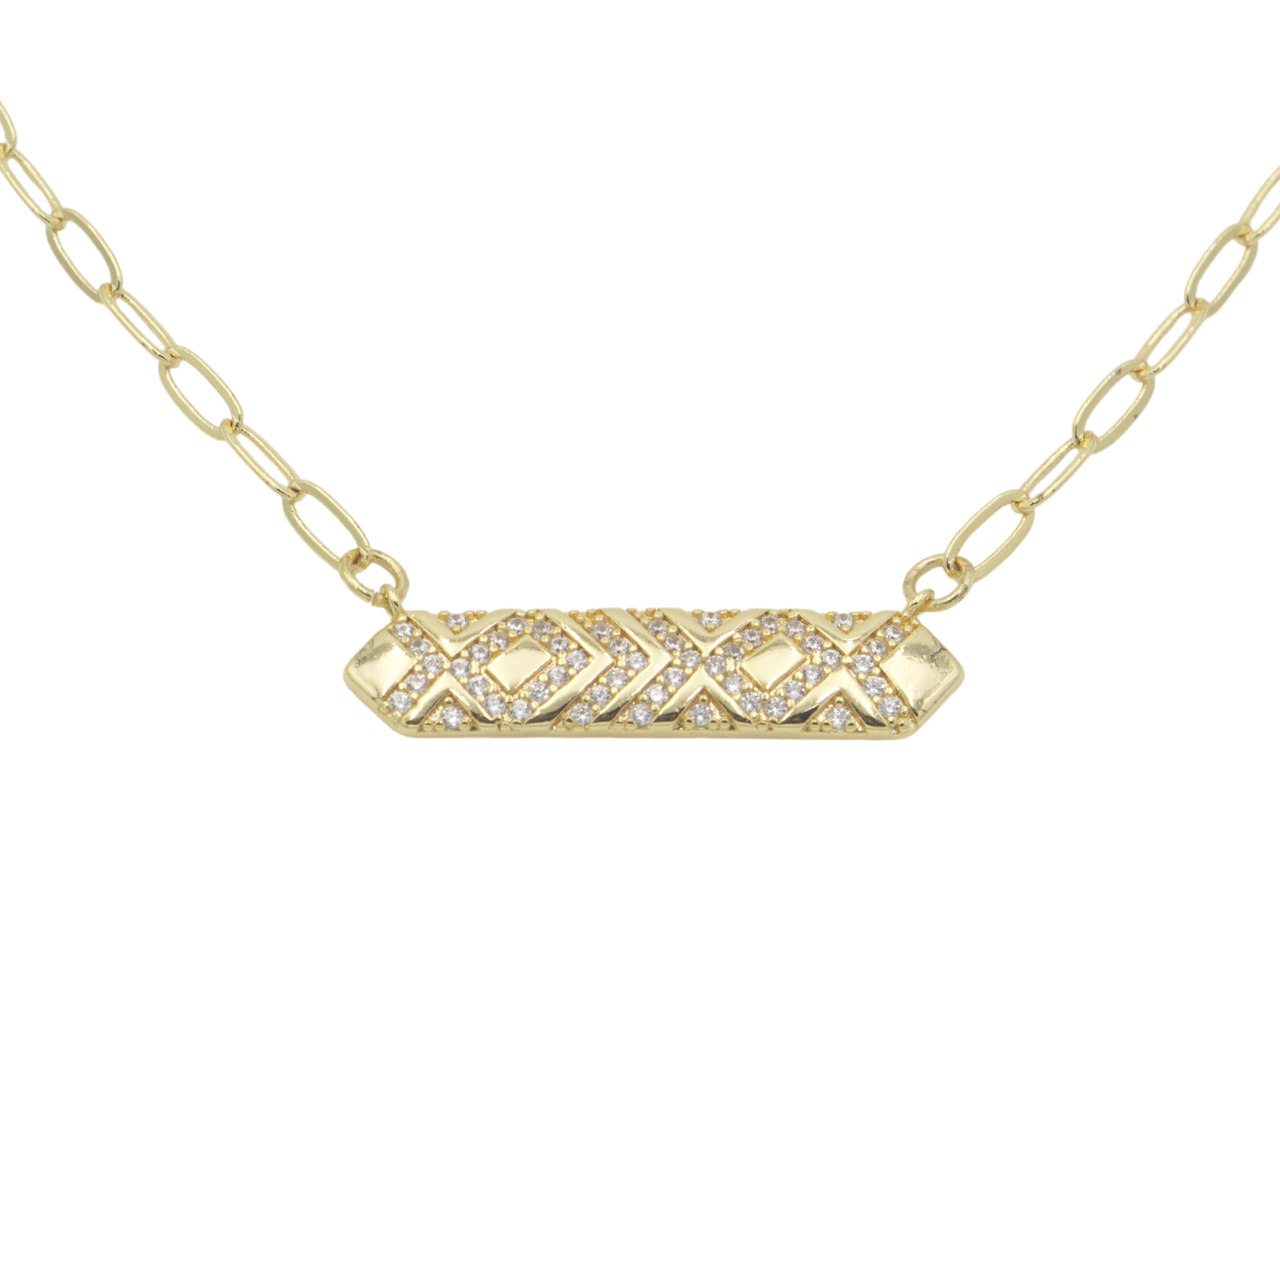 AW Boutique's Crystal Bar Pendant on a 16 inch fine paperclip chain. The pendant is filled with bright, sparkling cubic zirconia clear crystals in a geometric pattern.